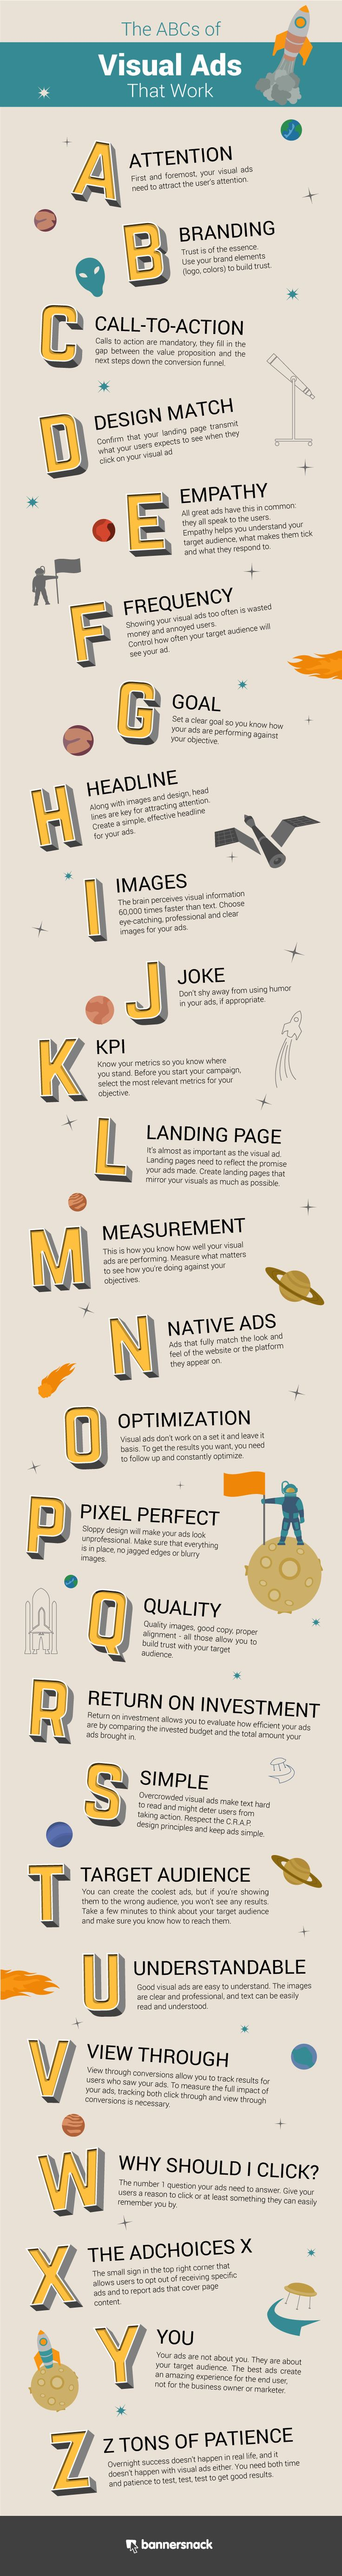 Great infographic  using the ABCs to describe traits to consider for your Visual marketing.  Click on pin and read moreThe ABCs of Visual Ads That Work [Infographic]   Social Media Today